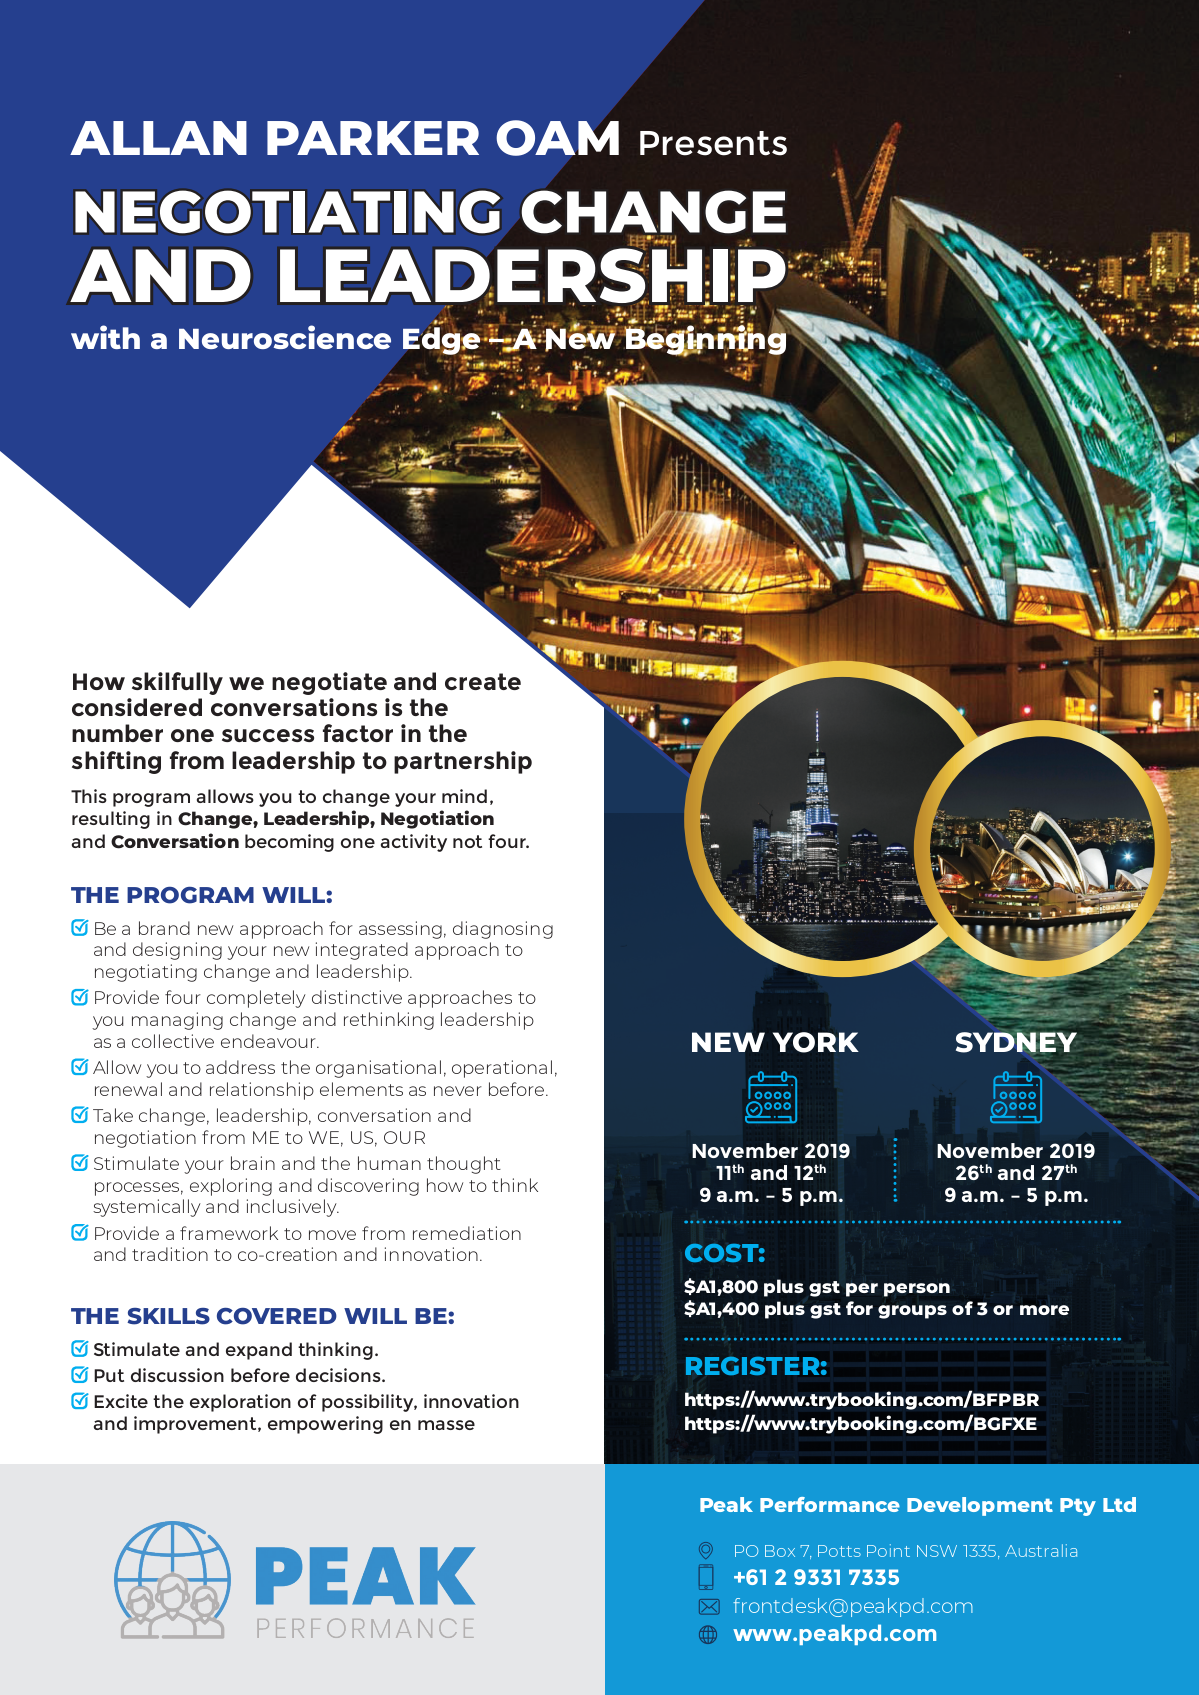 Revising date on Negotiating Change and Leadership New York & Sydney flyer from last week